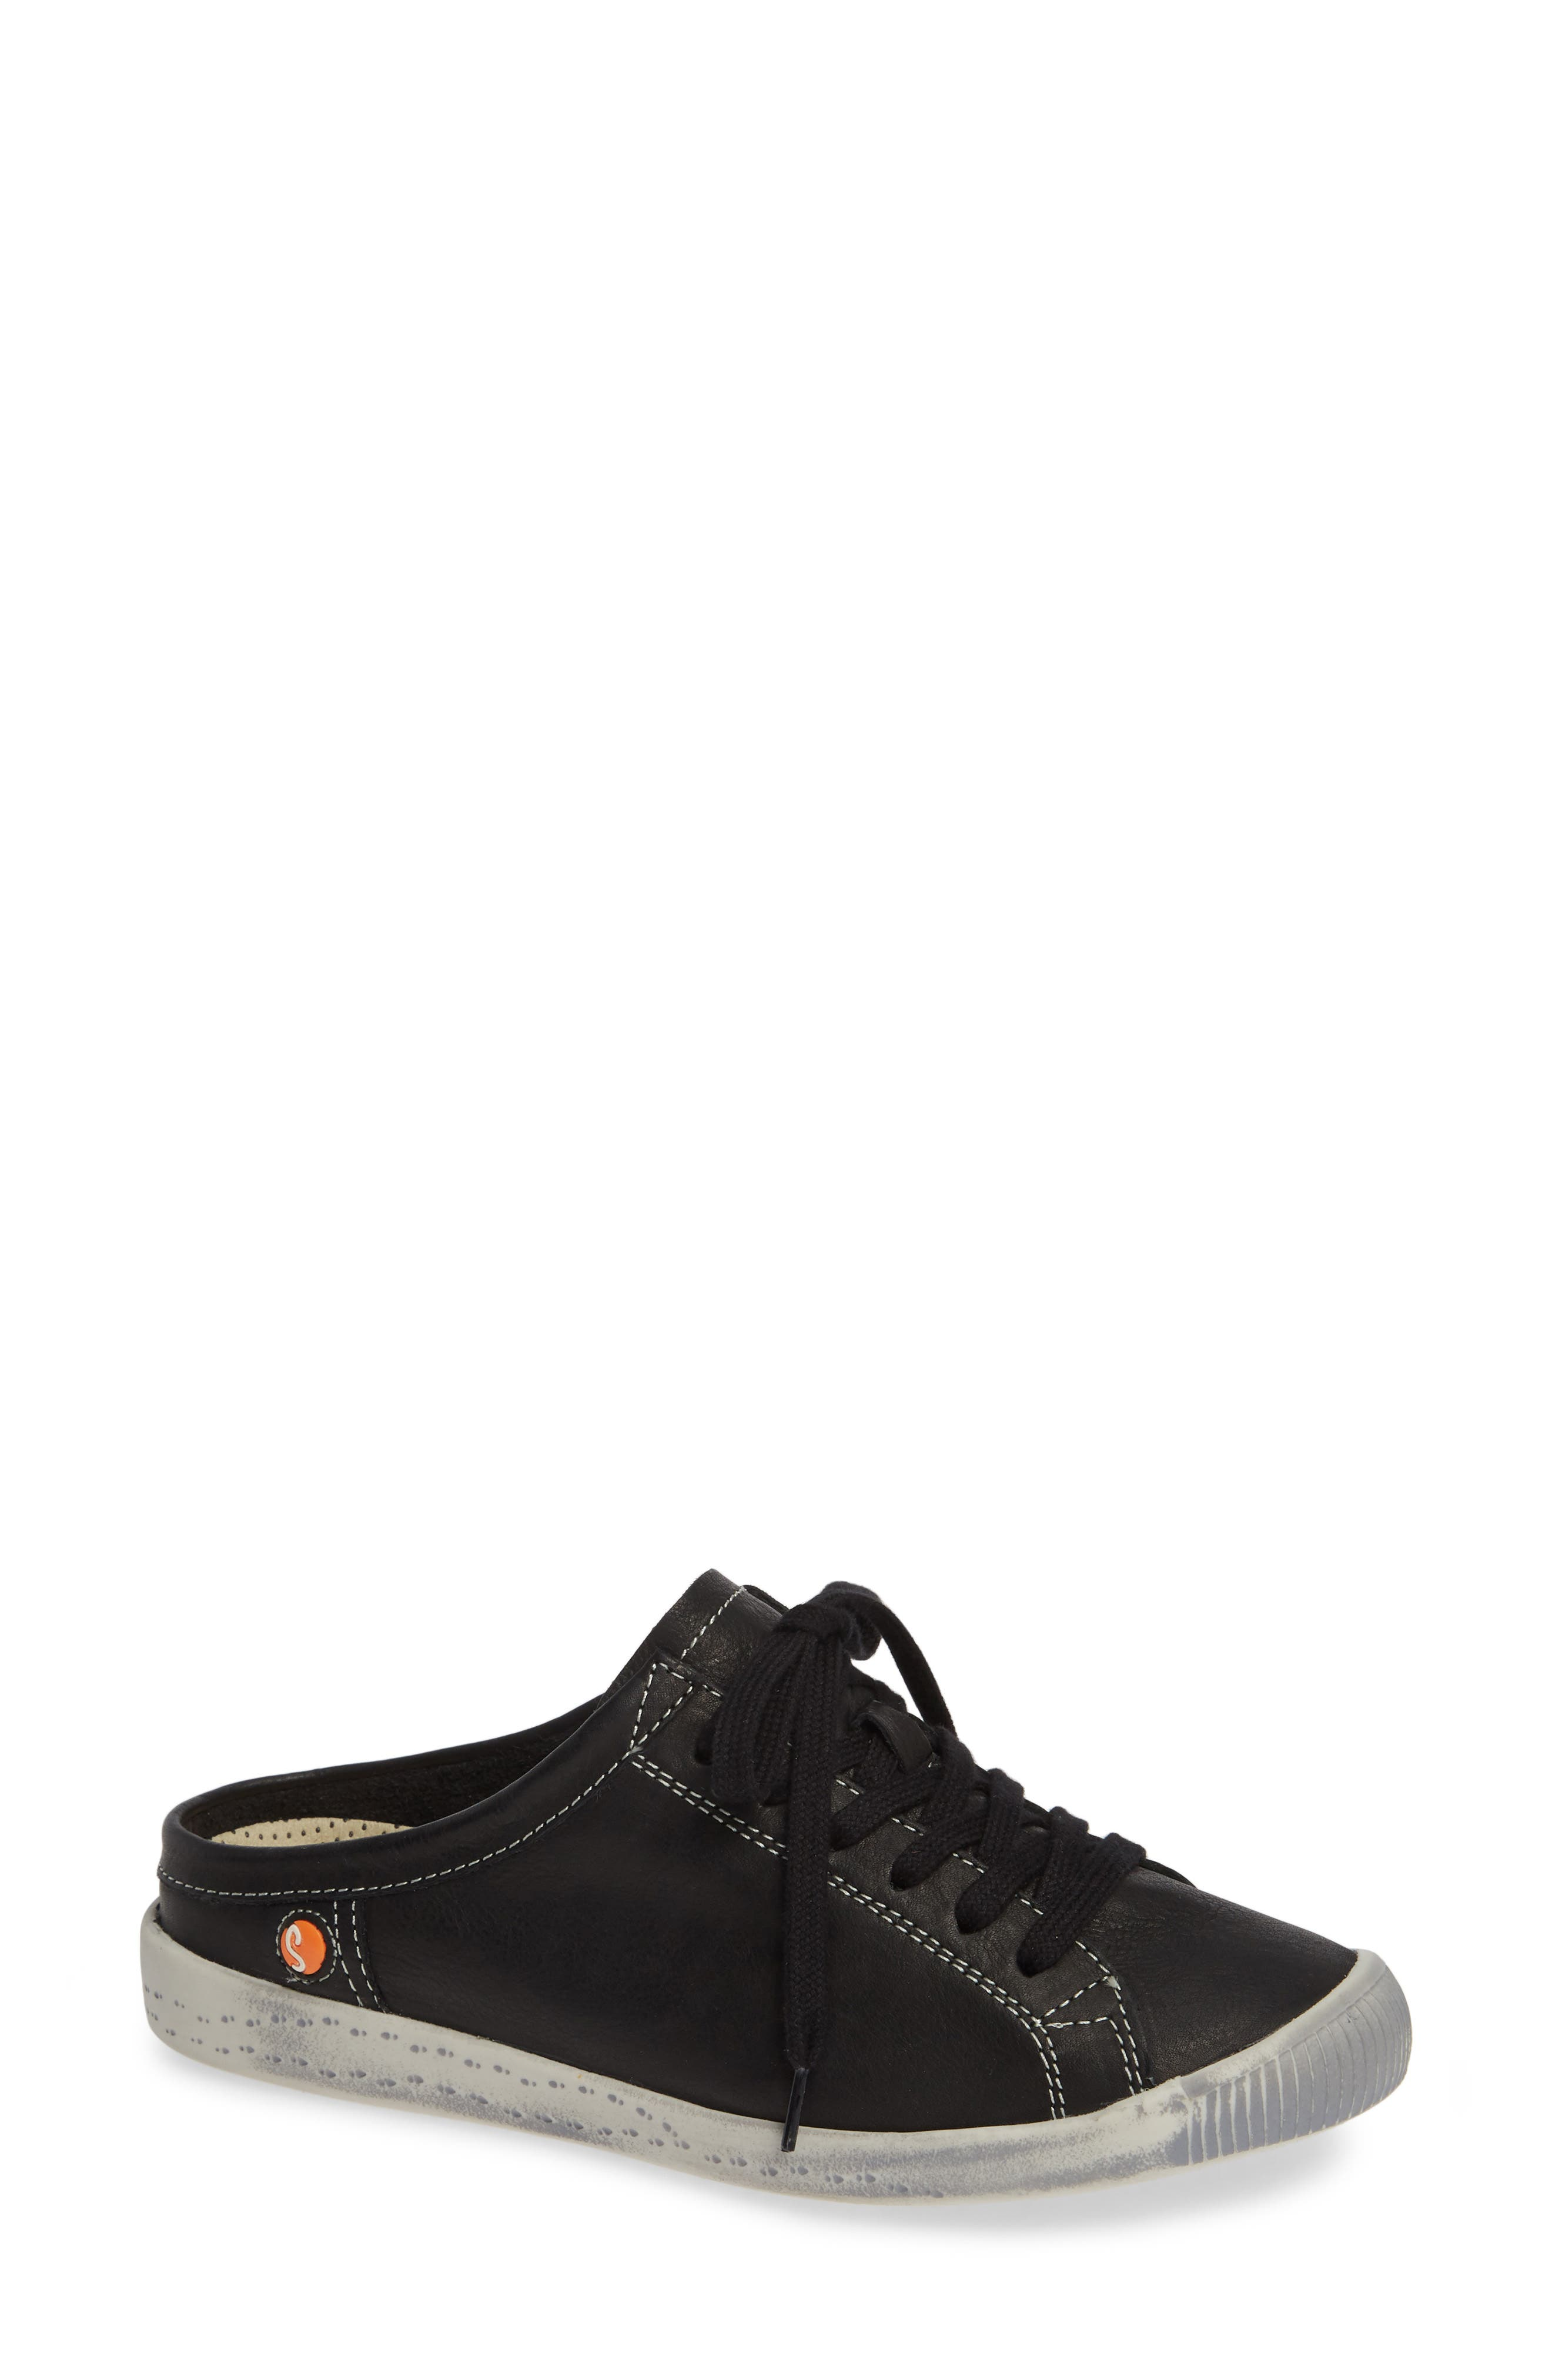 Softinos By Fly London Ije Sneaker Mule - Black